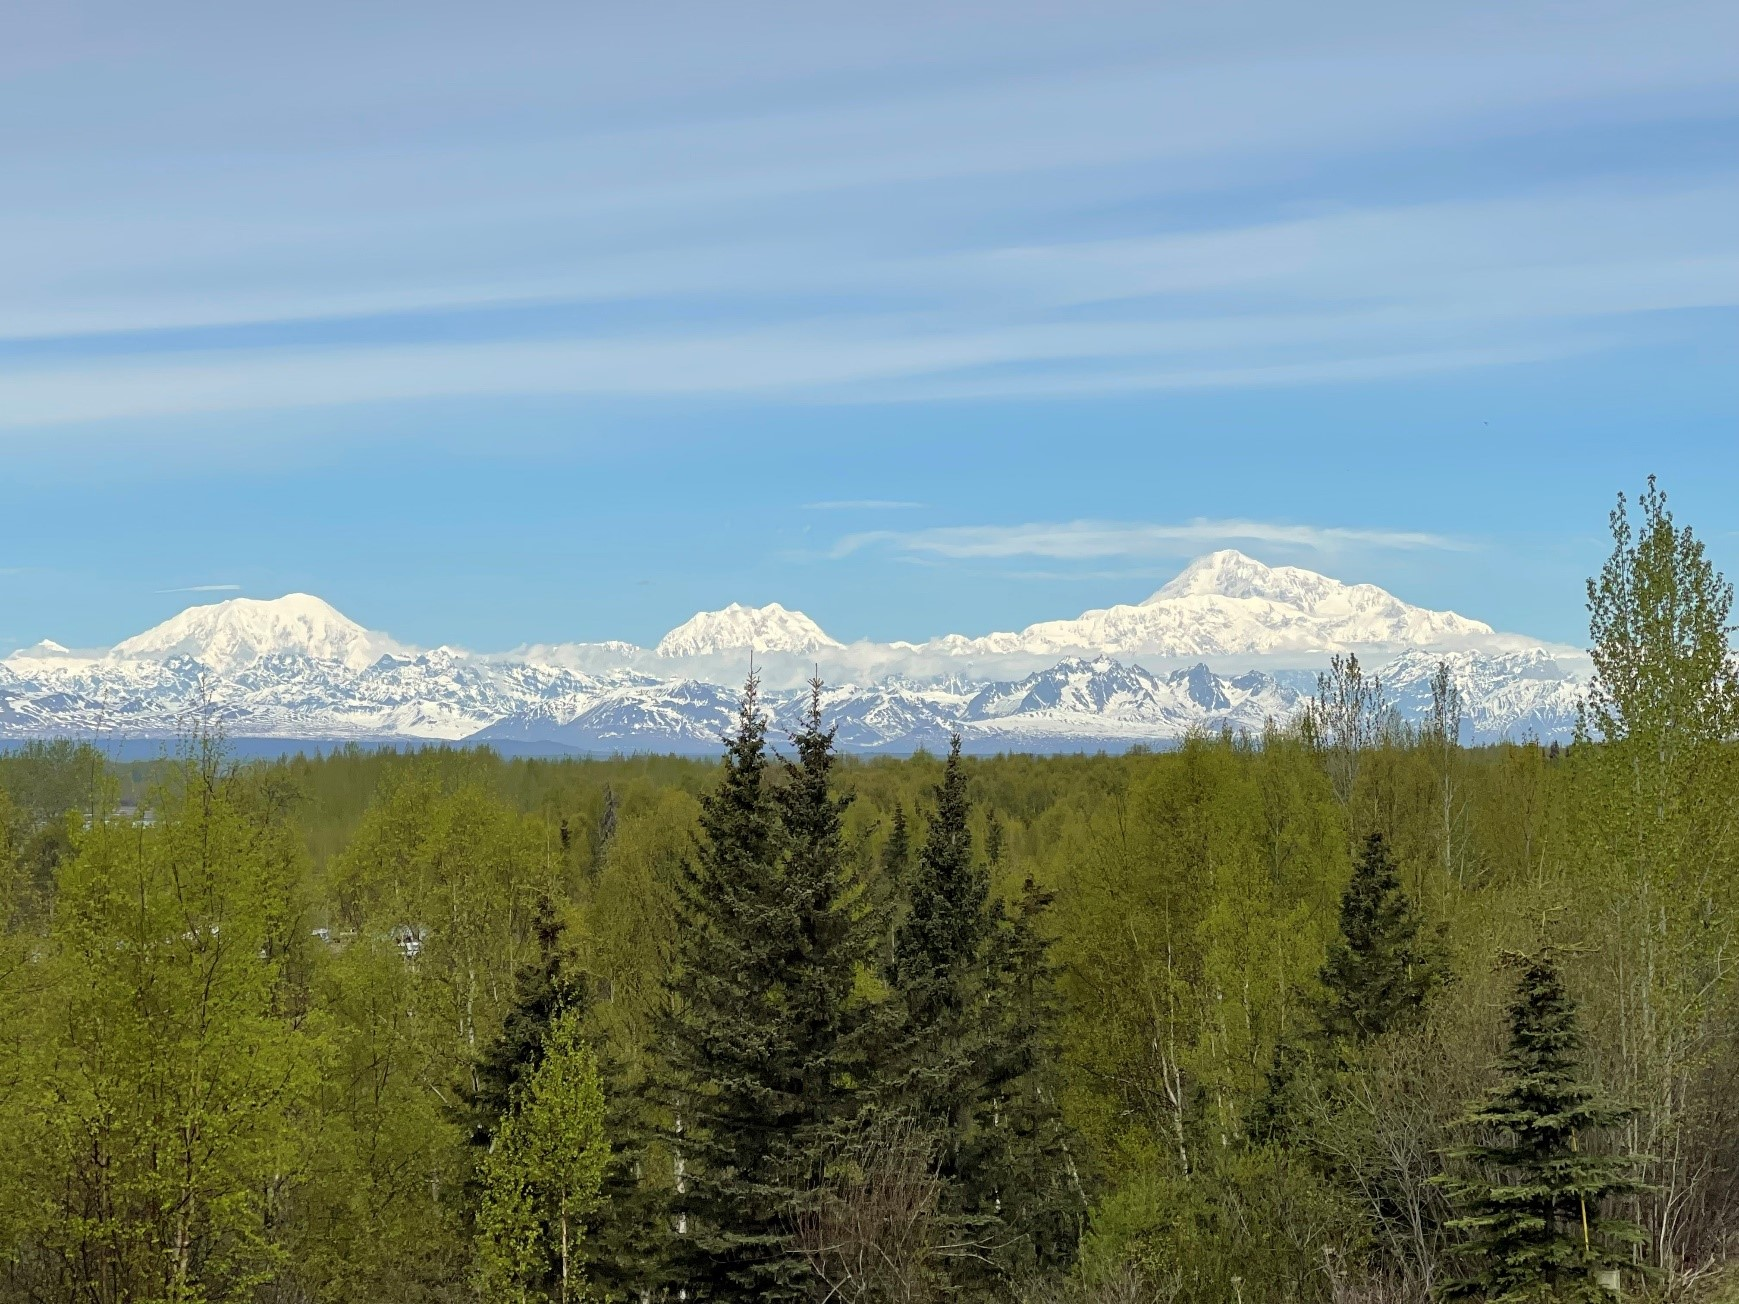 A breathtaking view of snowcapped Mount Foraker, Mount Hunter, and Denali alt